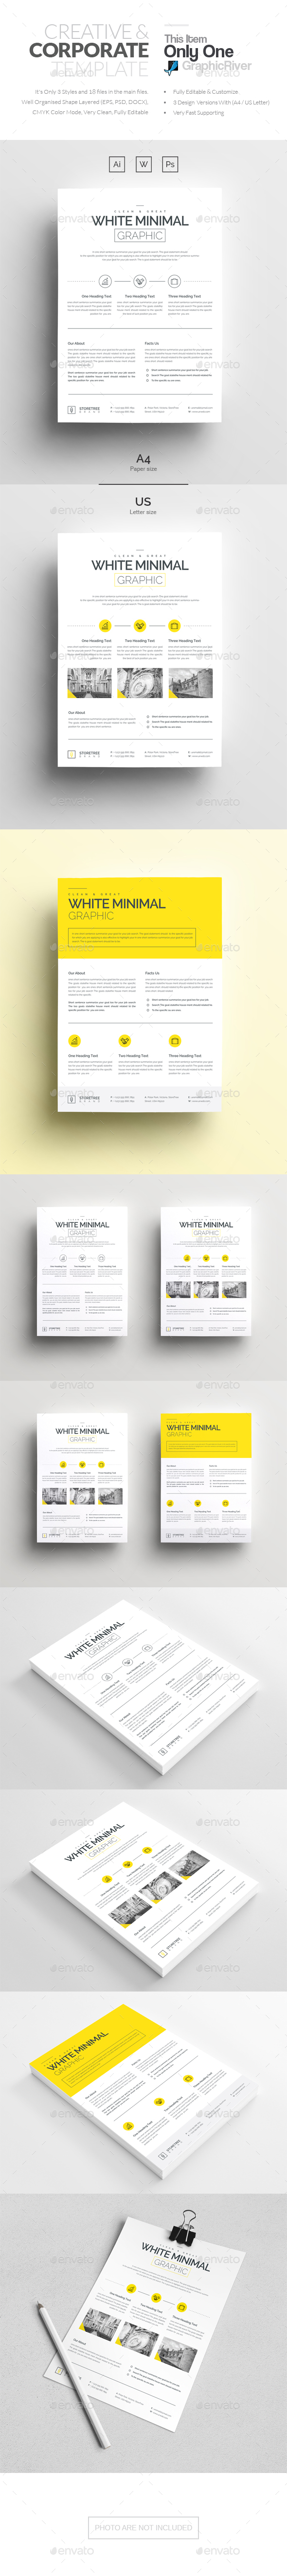 Minimal Corporate Flyer Template - Corporate Flyers